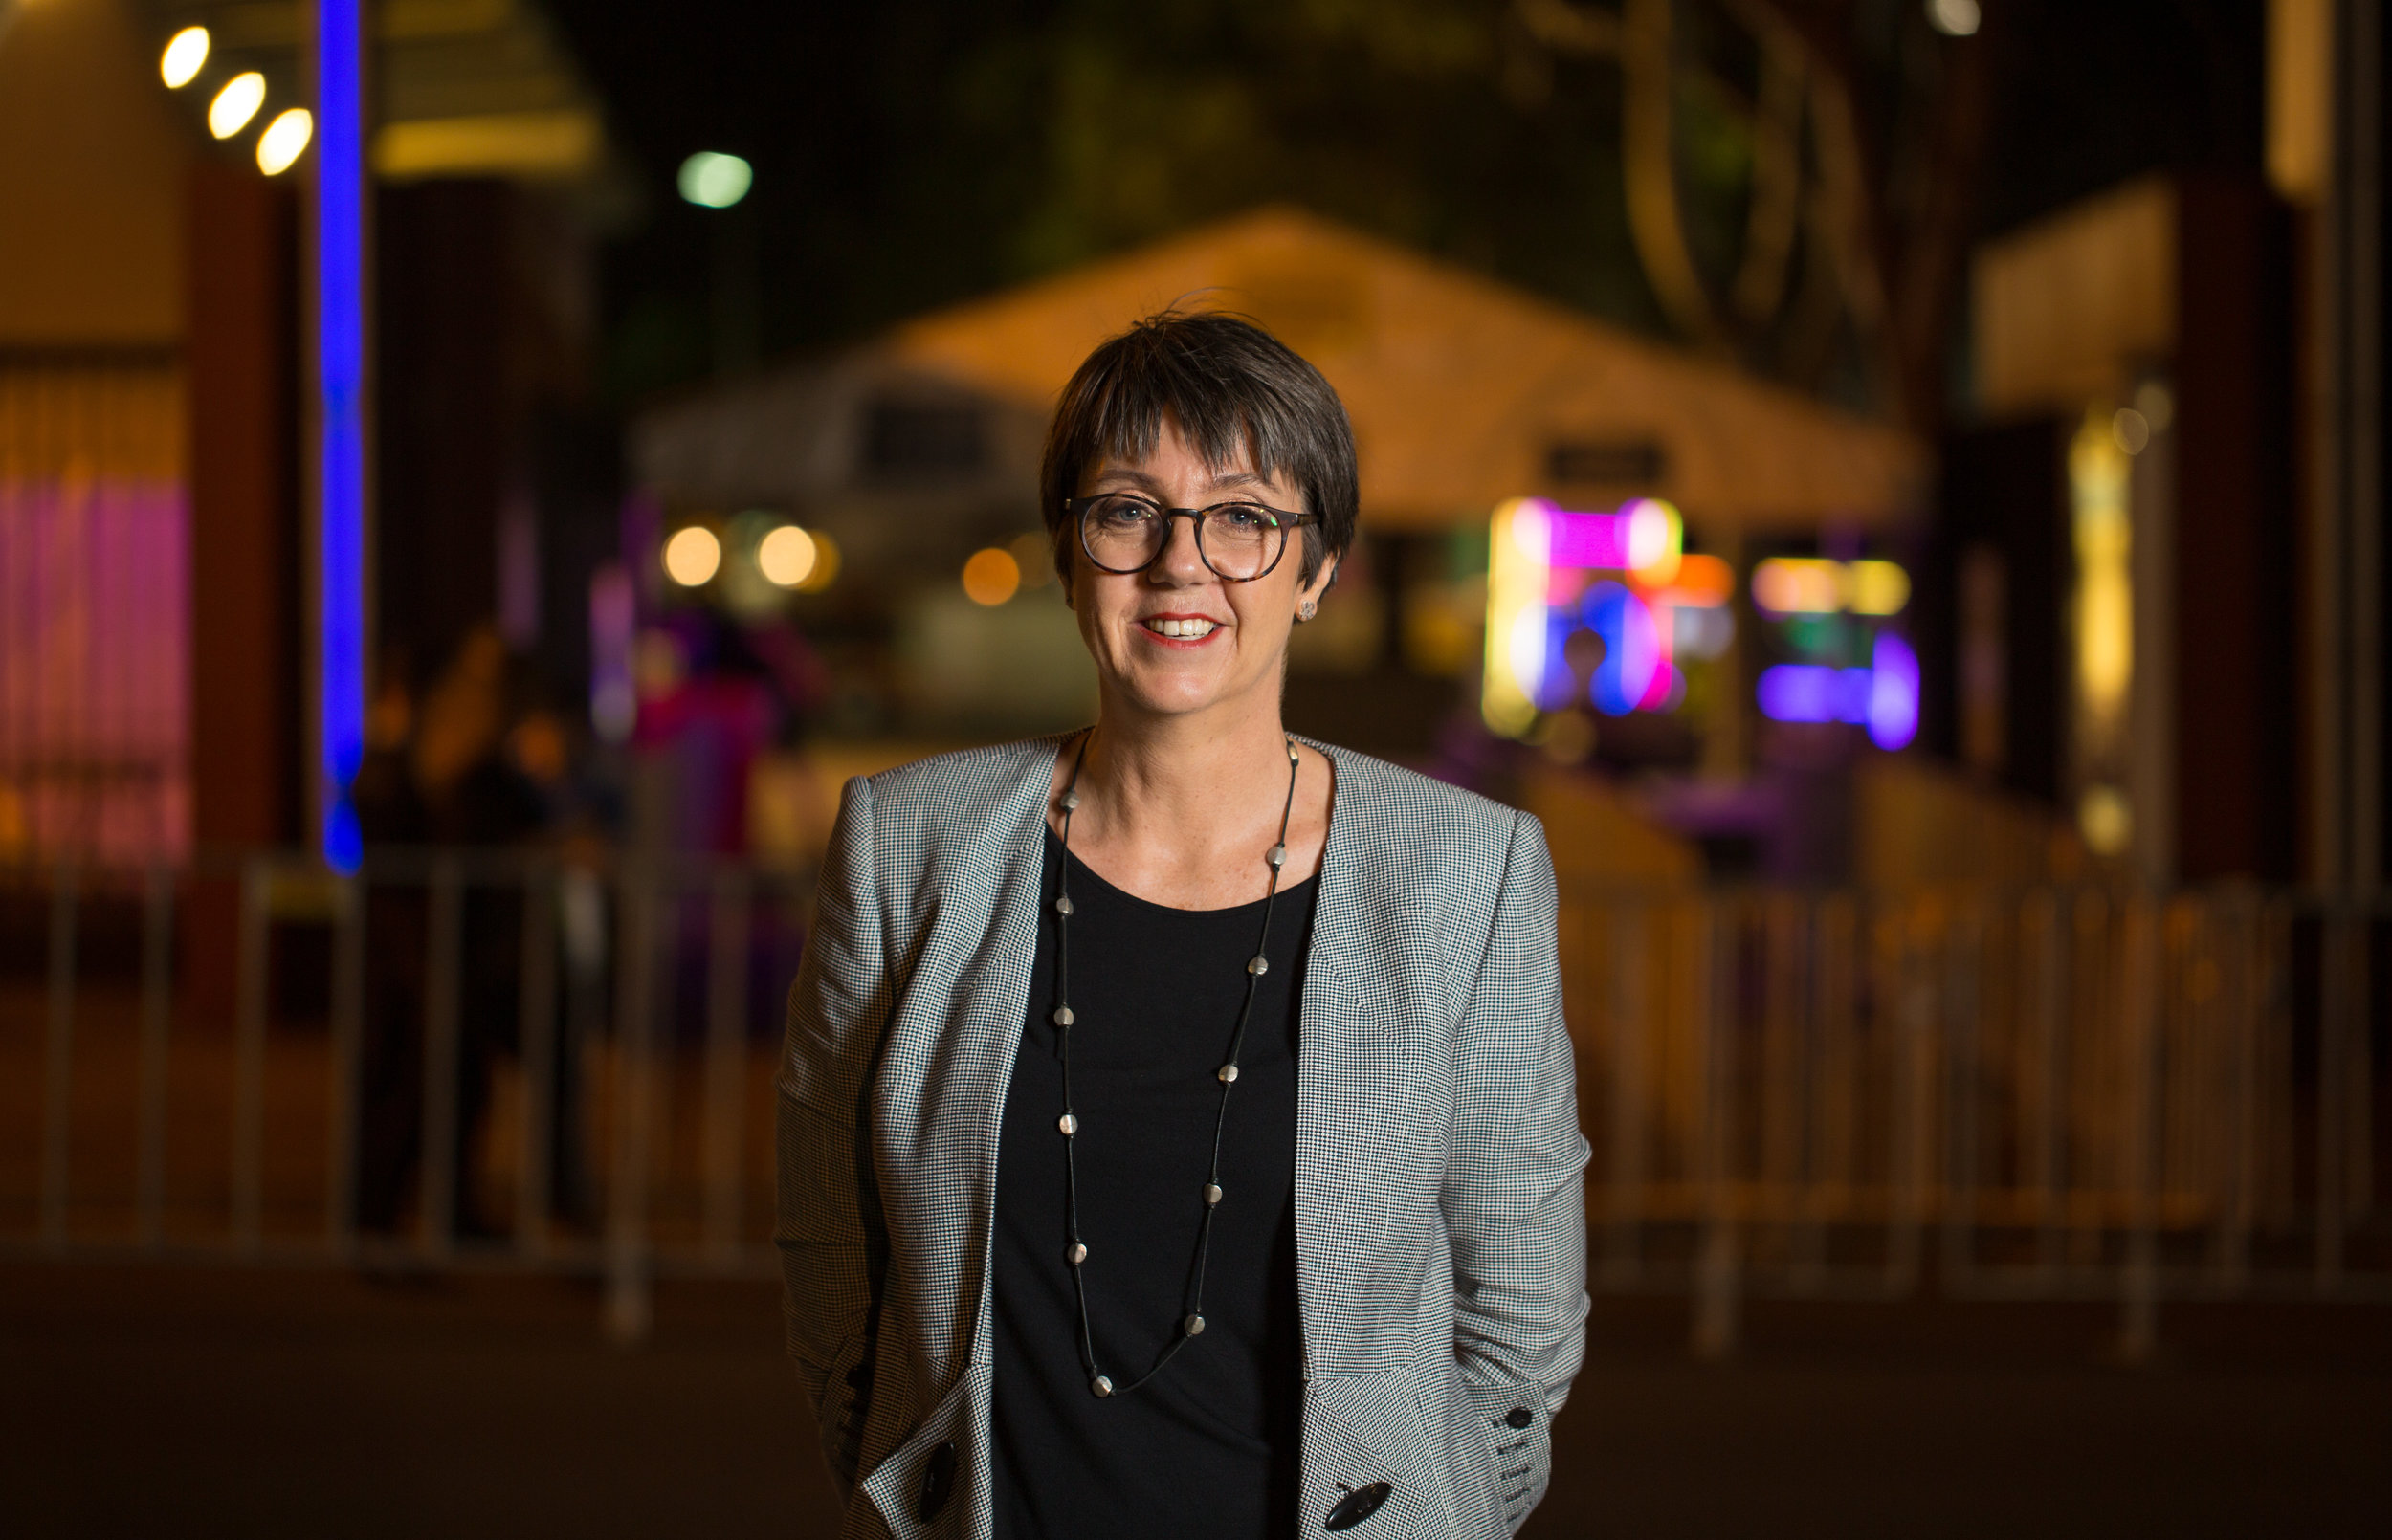 Vicki is pictured here working for  Fair Play  at the 2019 Mardi Gras.  Fair play  is an LGBTIQ community initiative which helps party-goers understand their legal rights and how to keep safe during the Mardi Gras Festival.